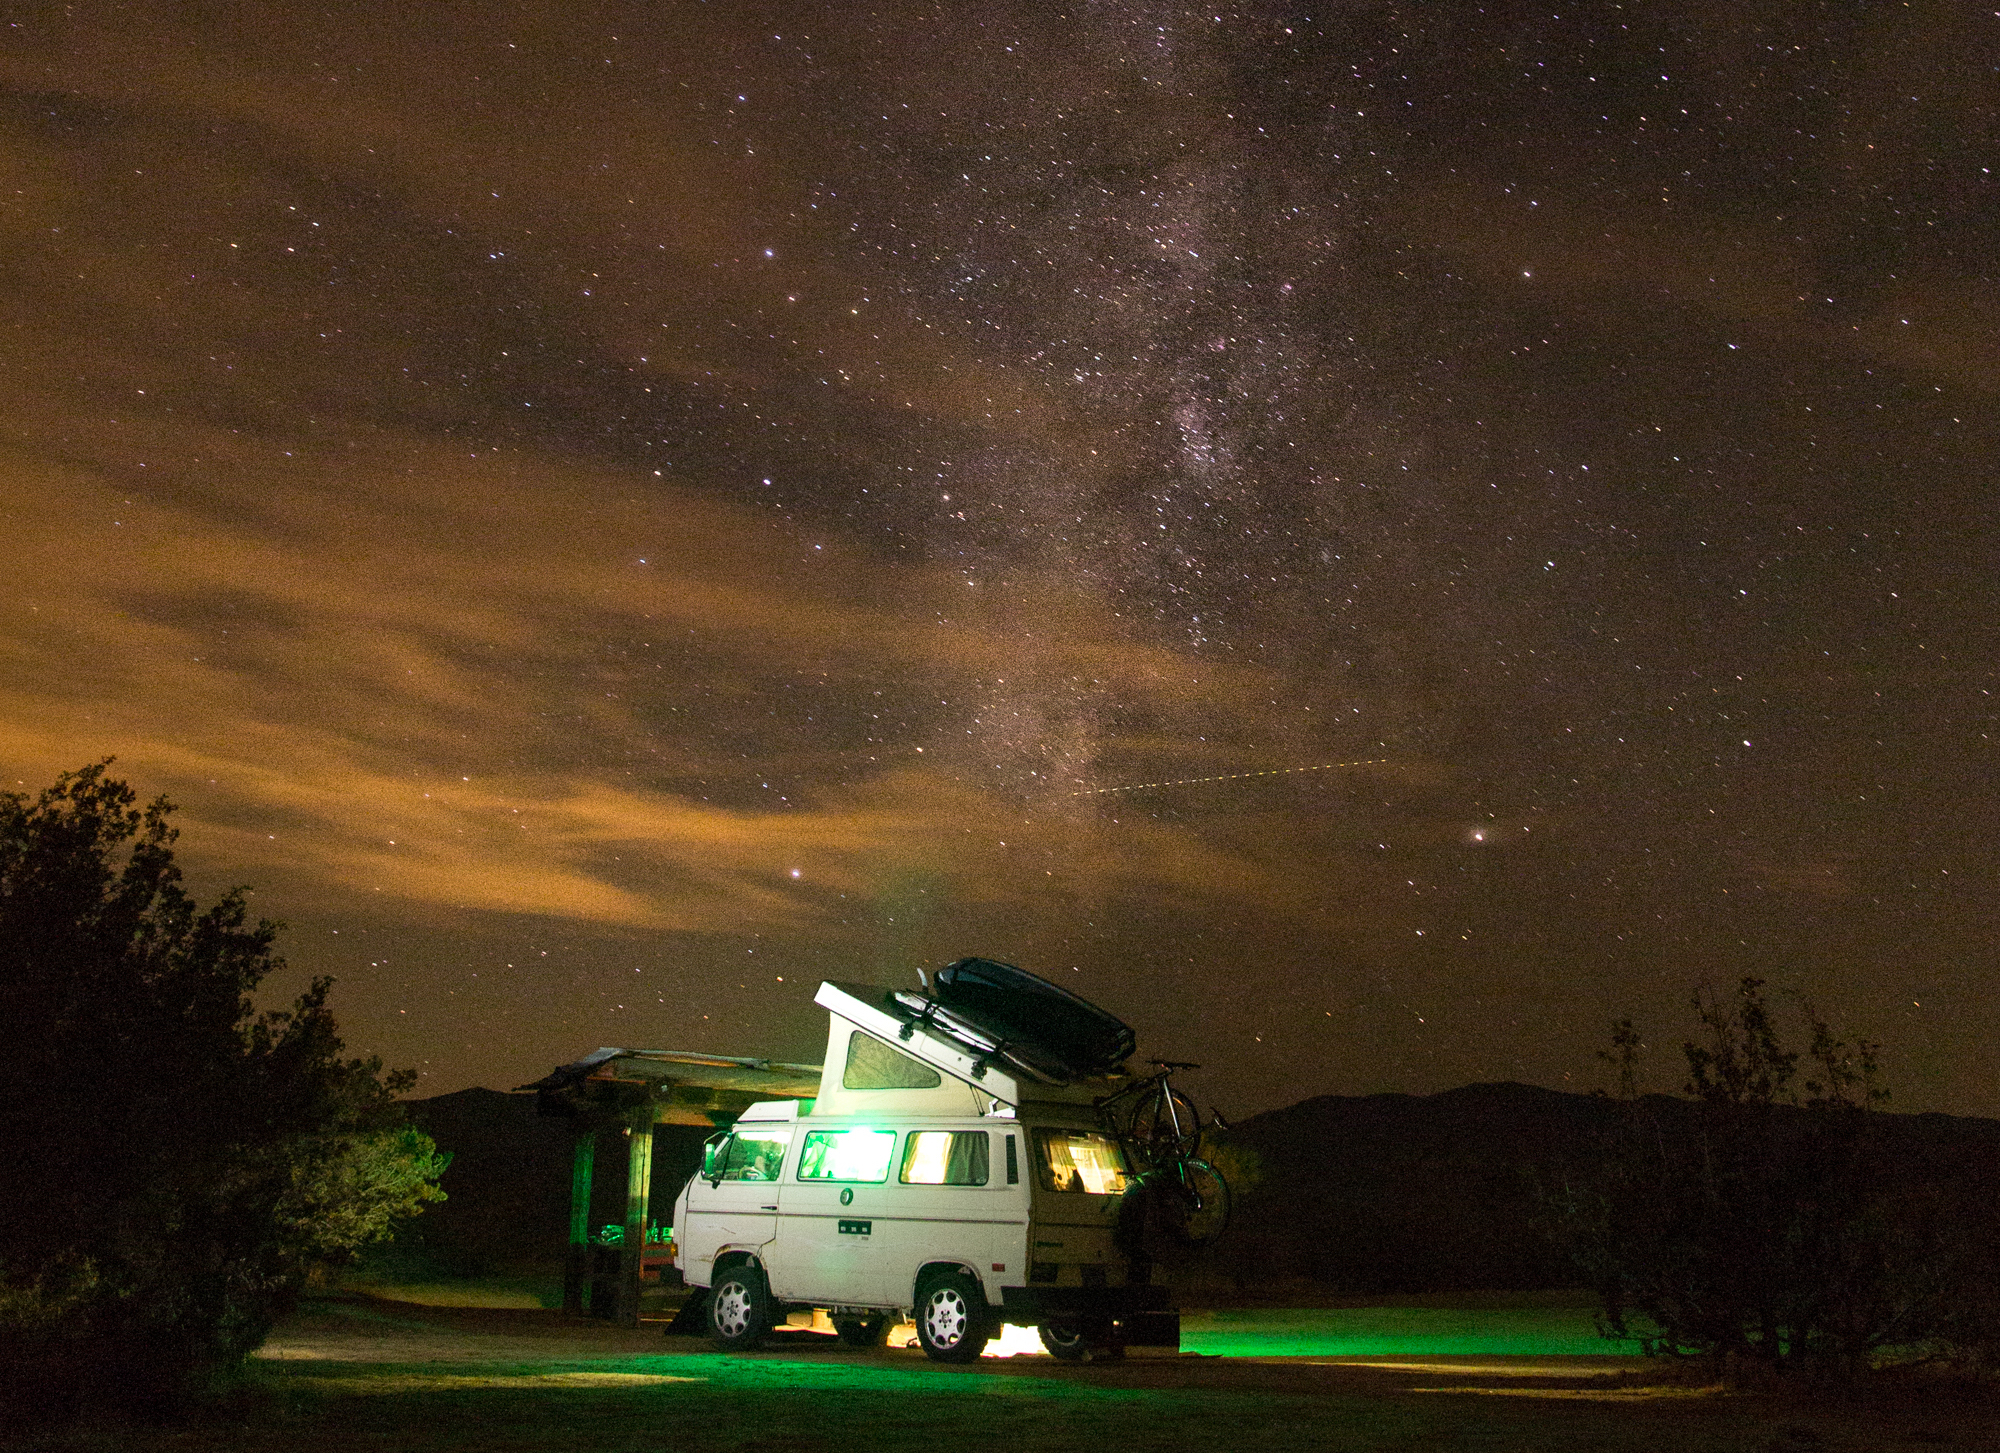 2019 Stargazing Guide and Astronomical Calendar | Hipcamp